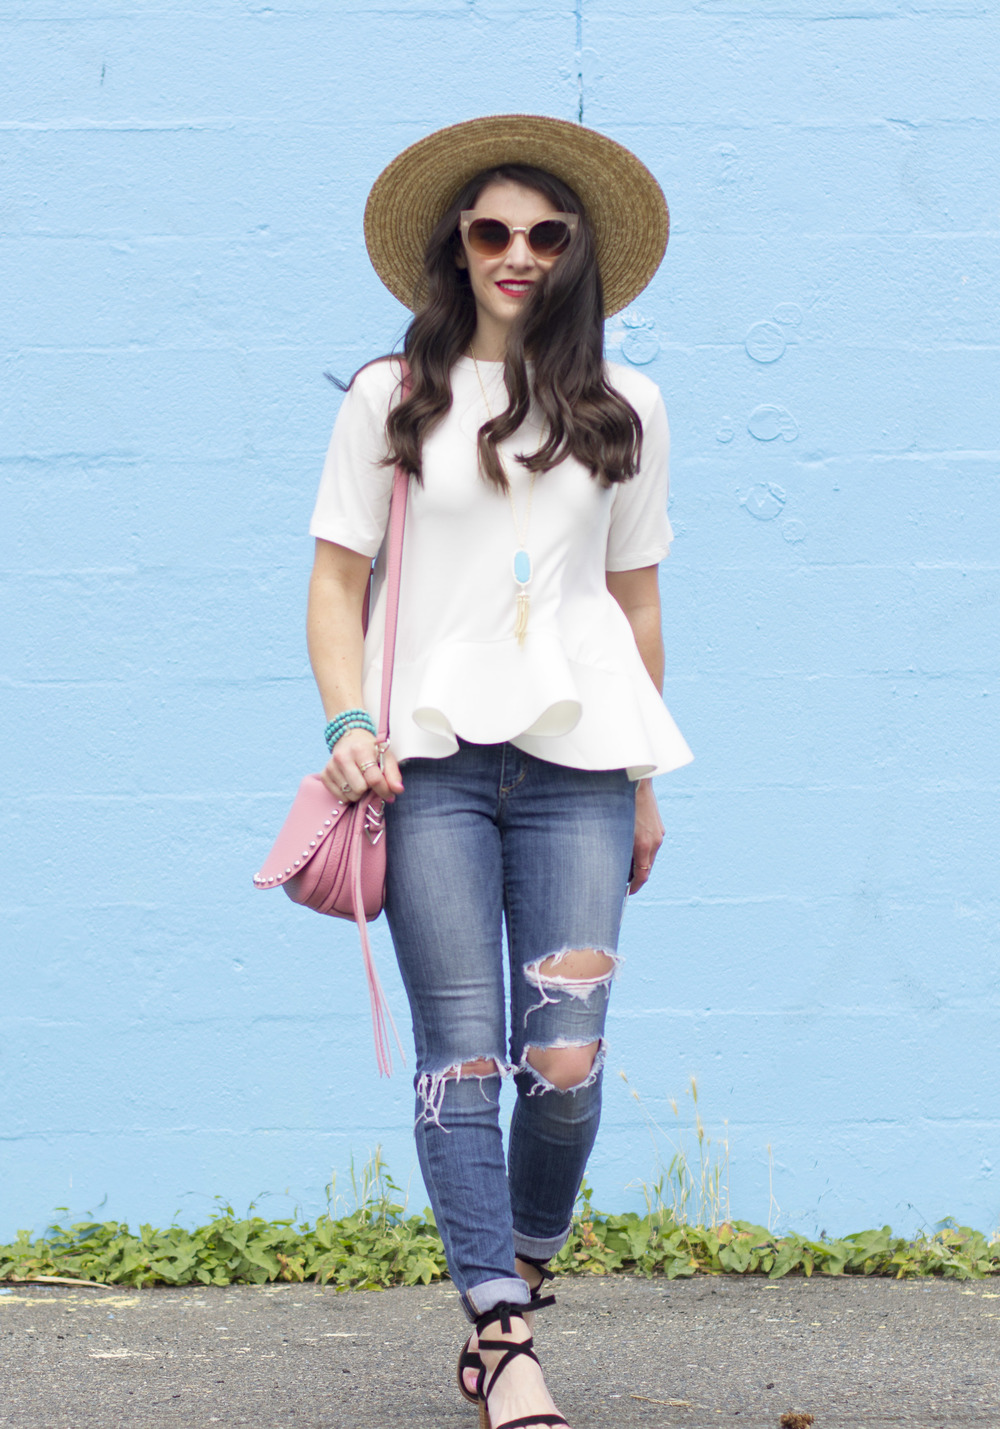 "Flattering T-Shirt for All Body Types, English Factory Flounce Tee, Joe's Jeans ""The Icon"" Skinny, Rebecca Minkoff Unlined Saddle Bag, San Diego Hat Co Boater Hat, Taudrey Turquoise Bracelets, Steve Madden Rizzaa Sandals, Cute Summer Outfits on Me & Mr. Jones!"